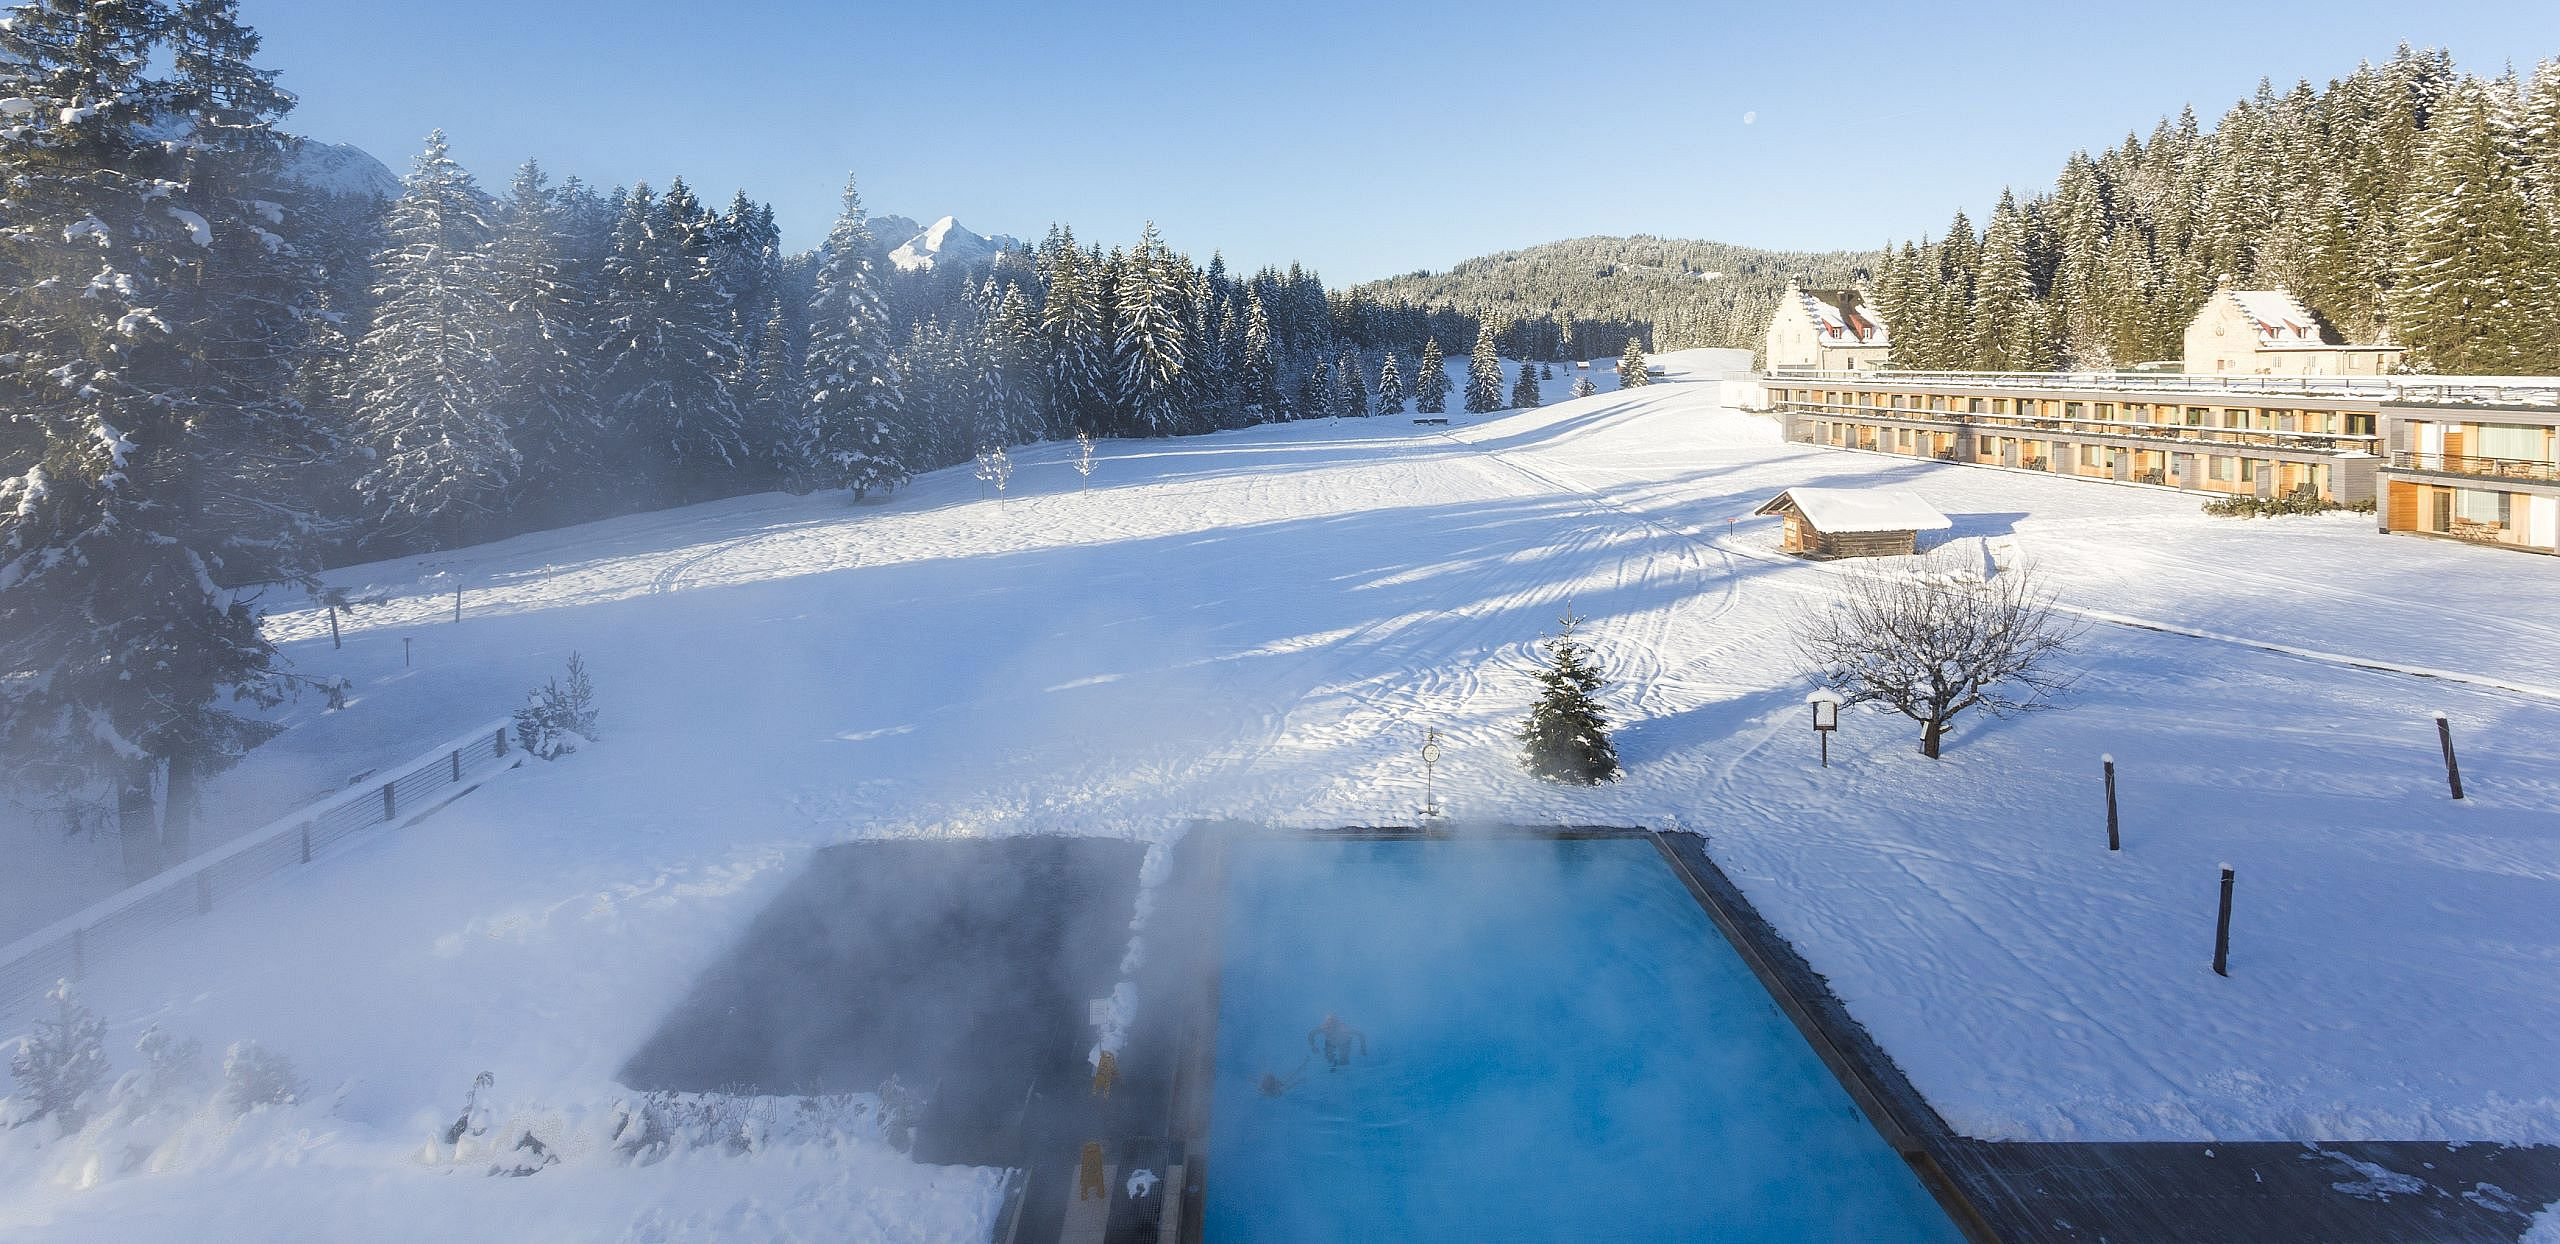 Das Spa und Wellnessrefugium Kranzbach im Winter